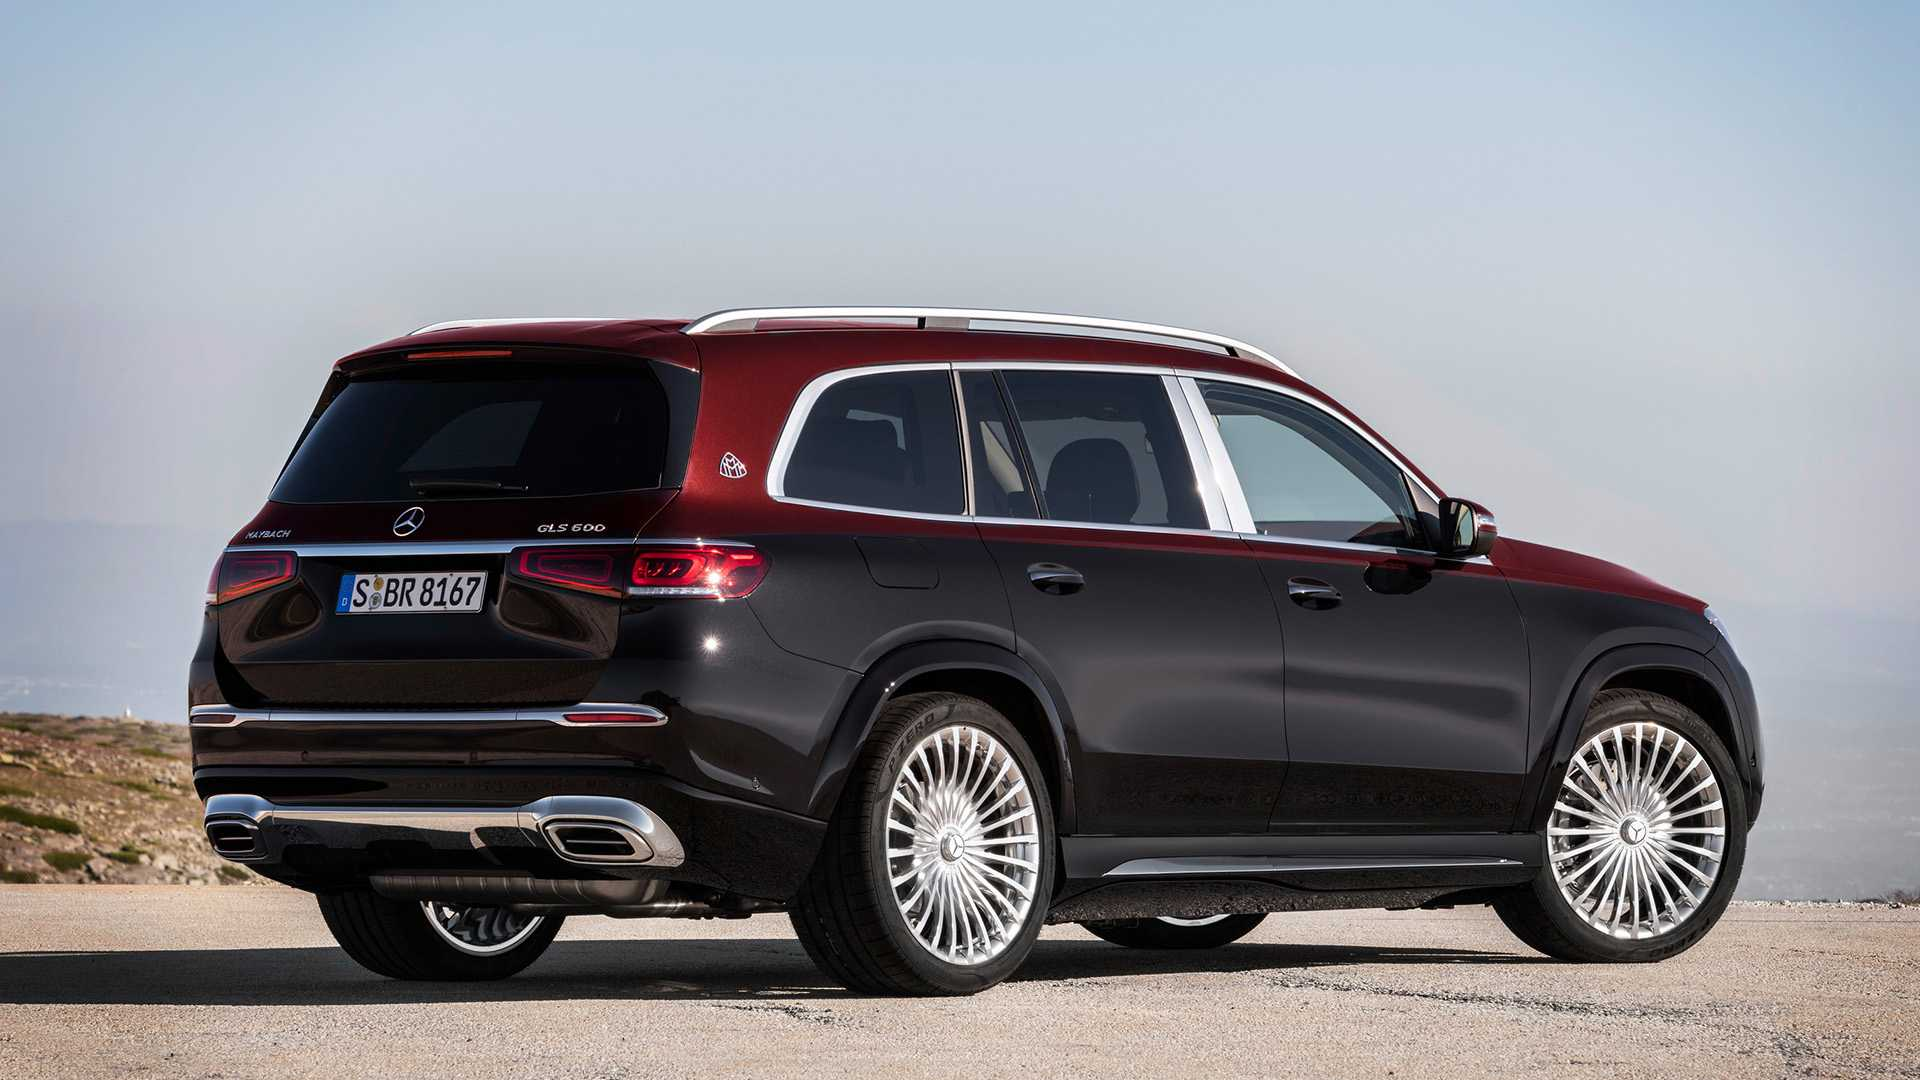 mercedes-maybach-gls-2020-8.jpg